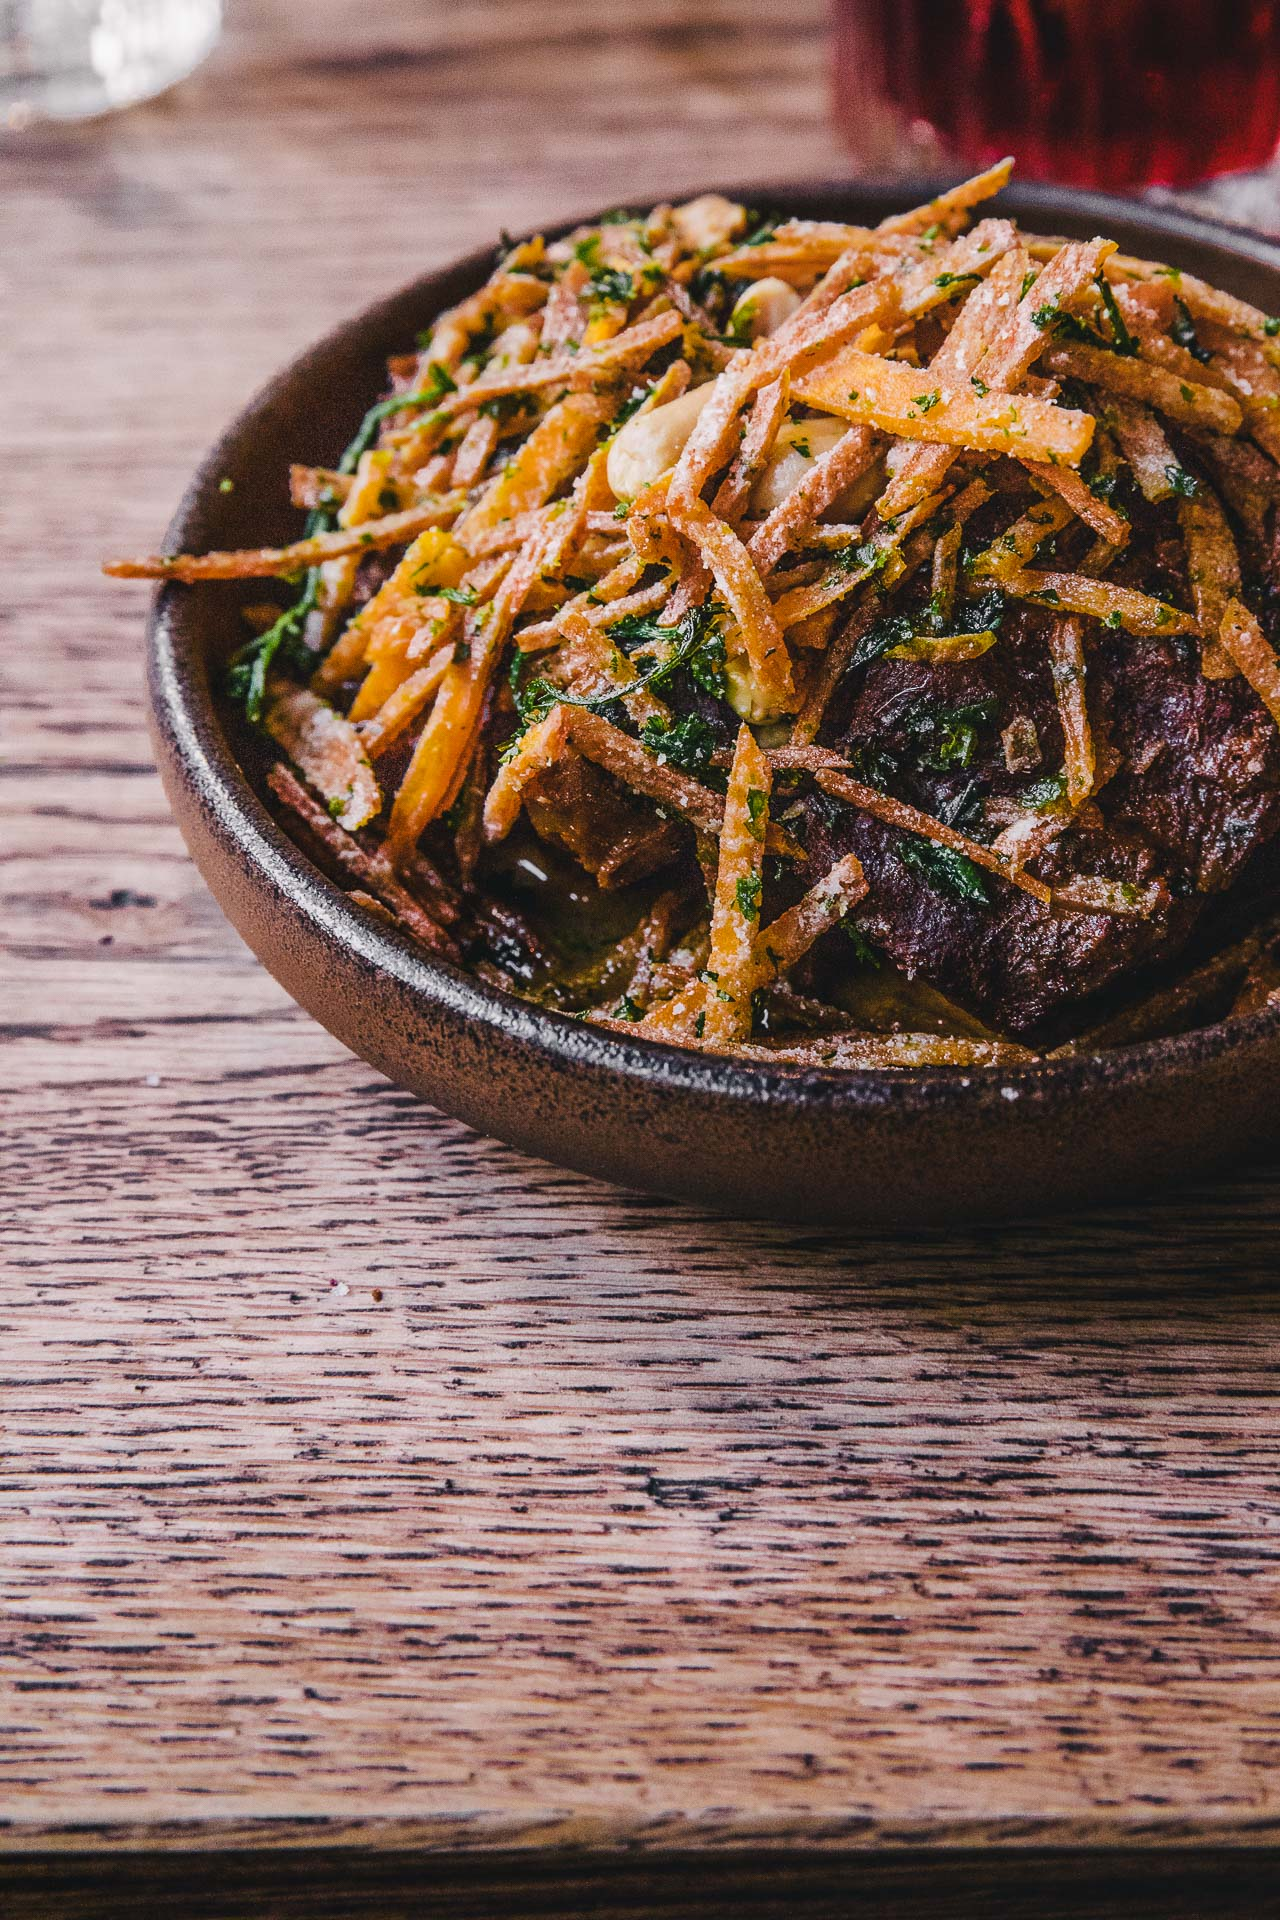 Slow-cooked ox cheek, Refuge, Manchester, England.